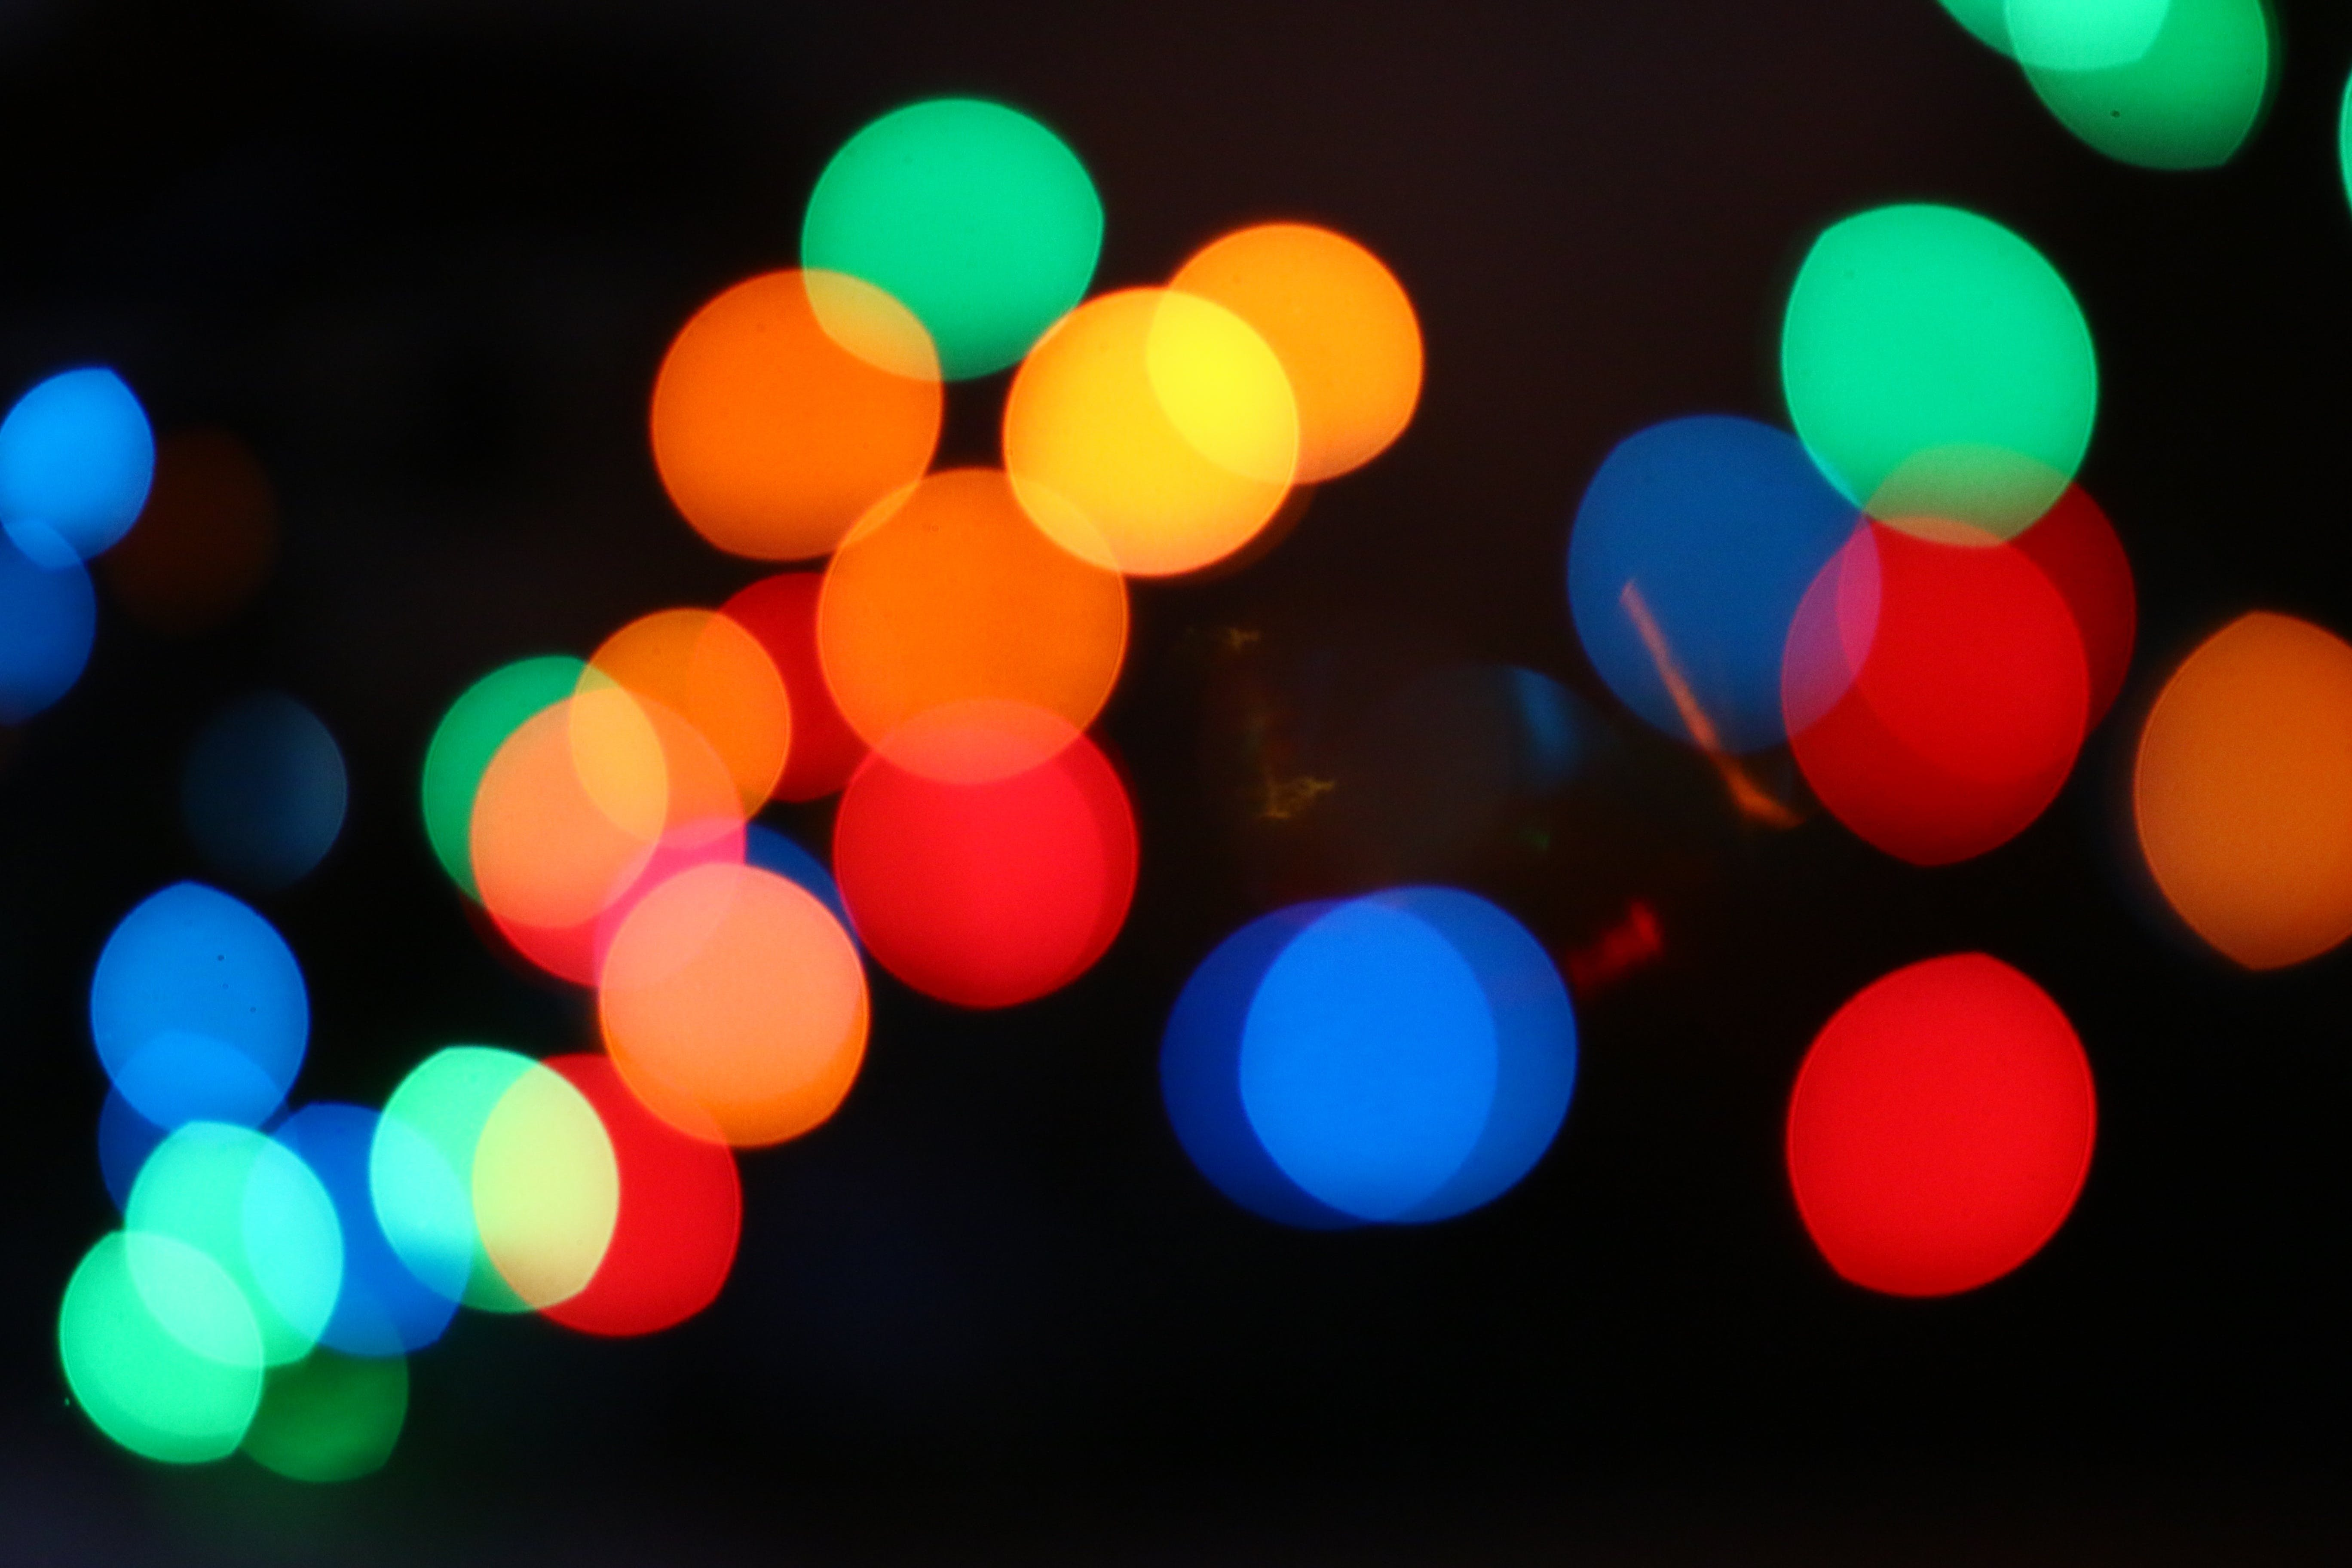 Free stock photo of lights, colorful, bokeh, blurred